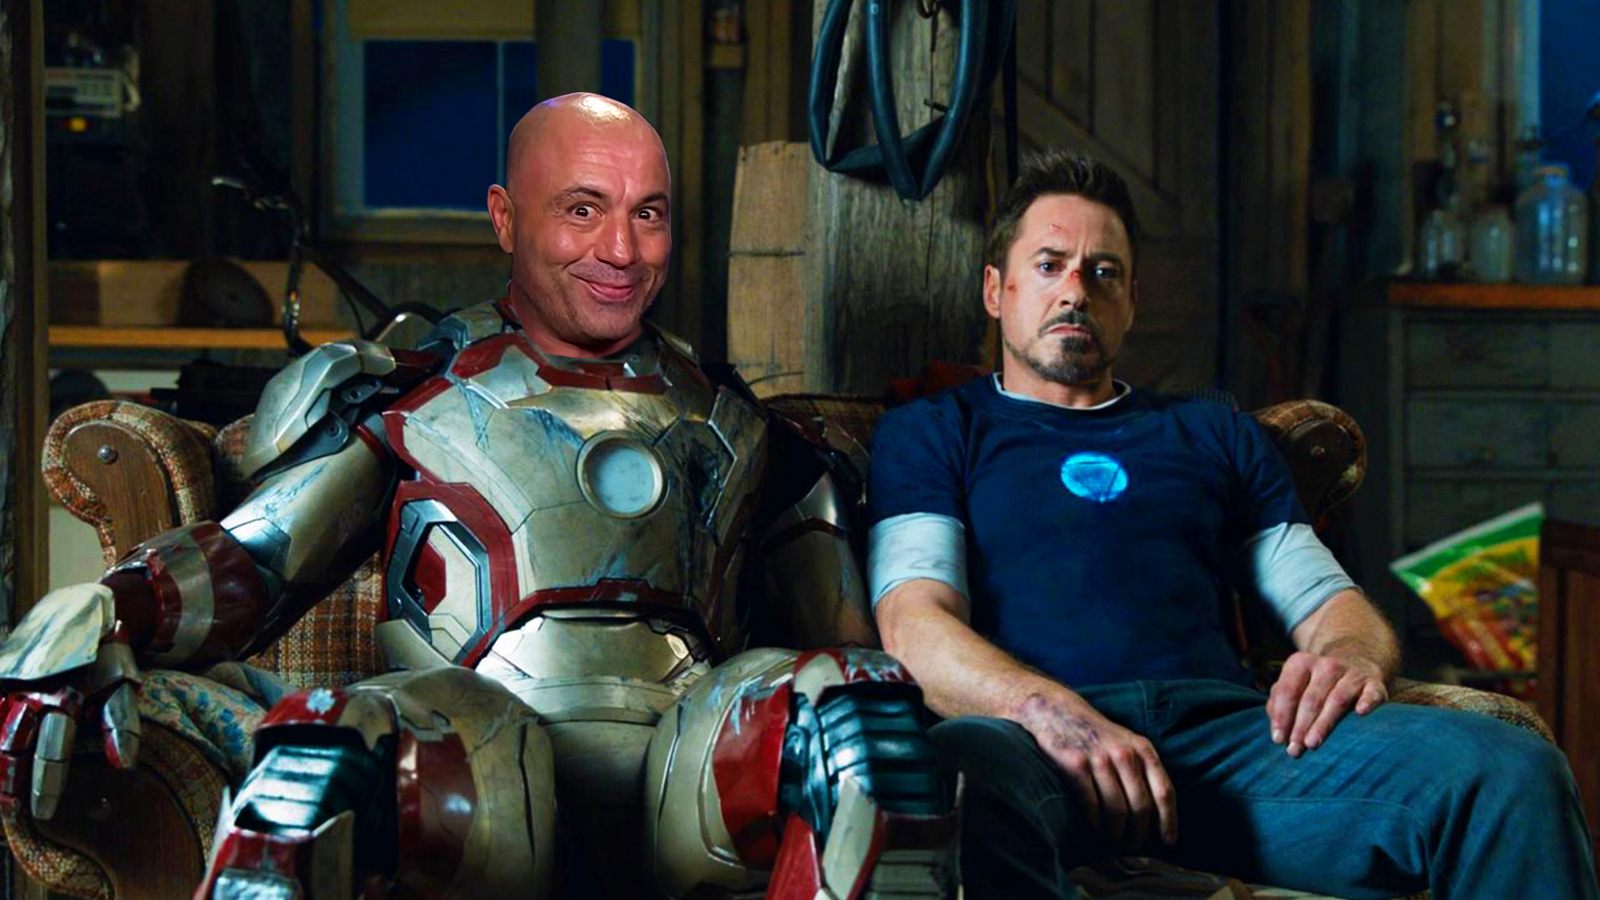 Joe Rogan as Ironman and Robert Downey Jr on a couch